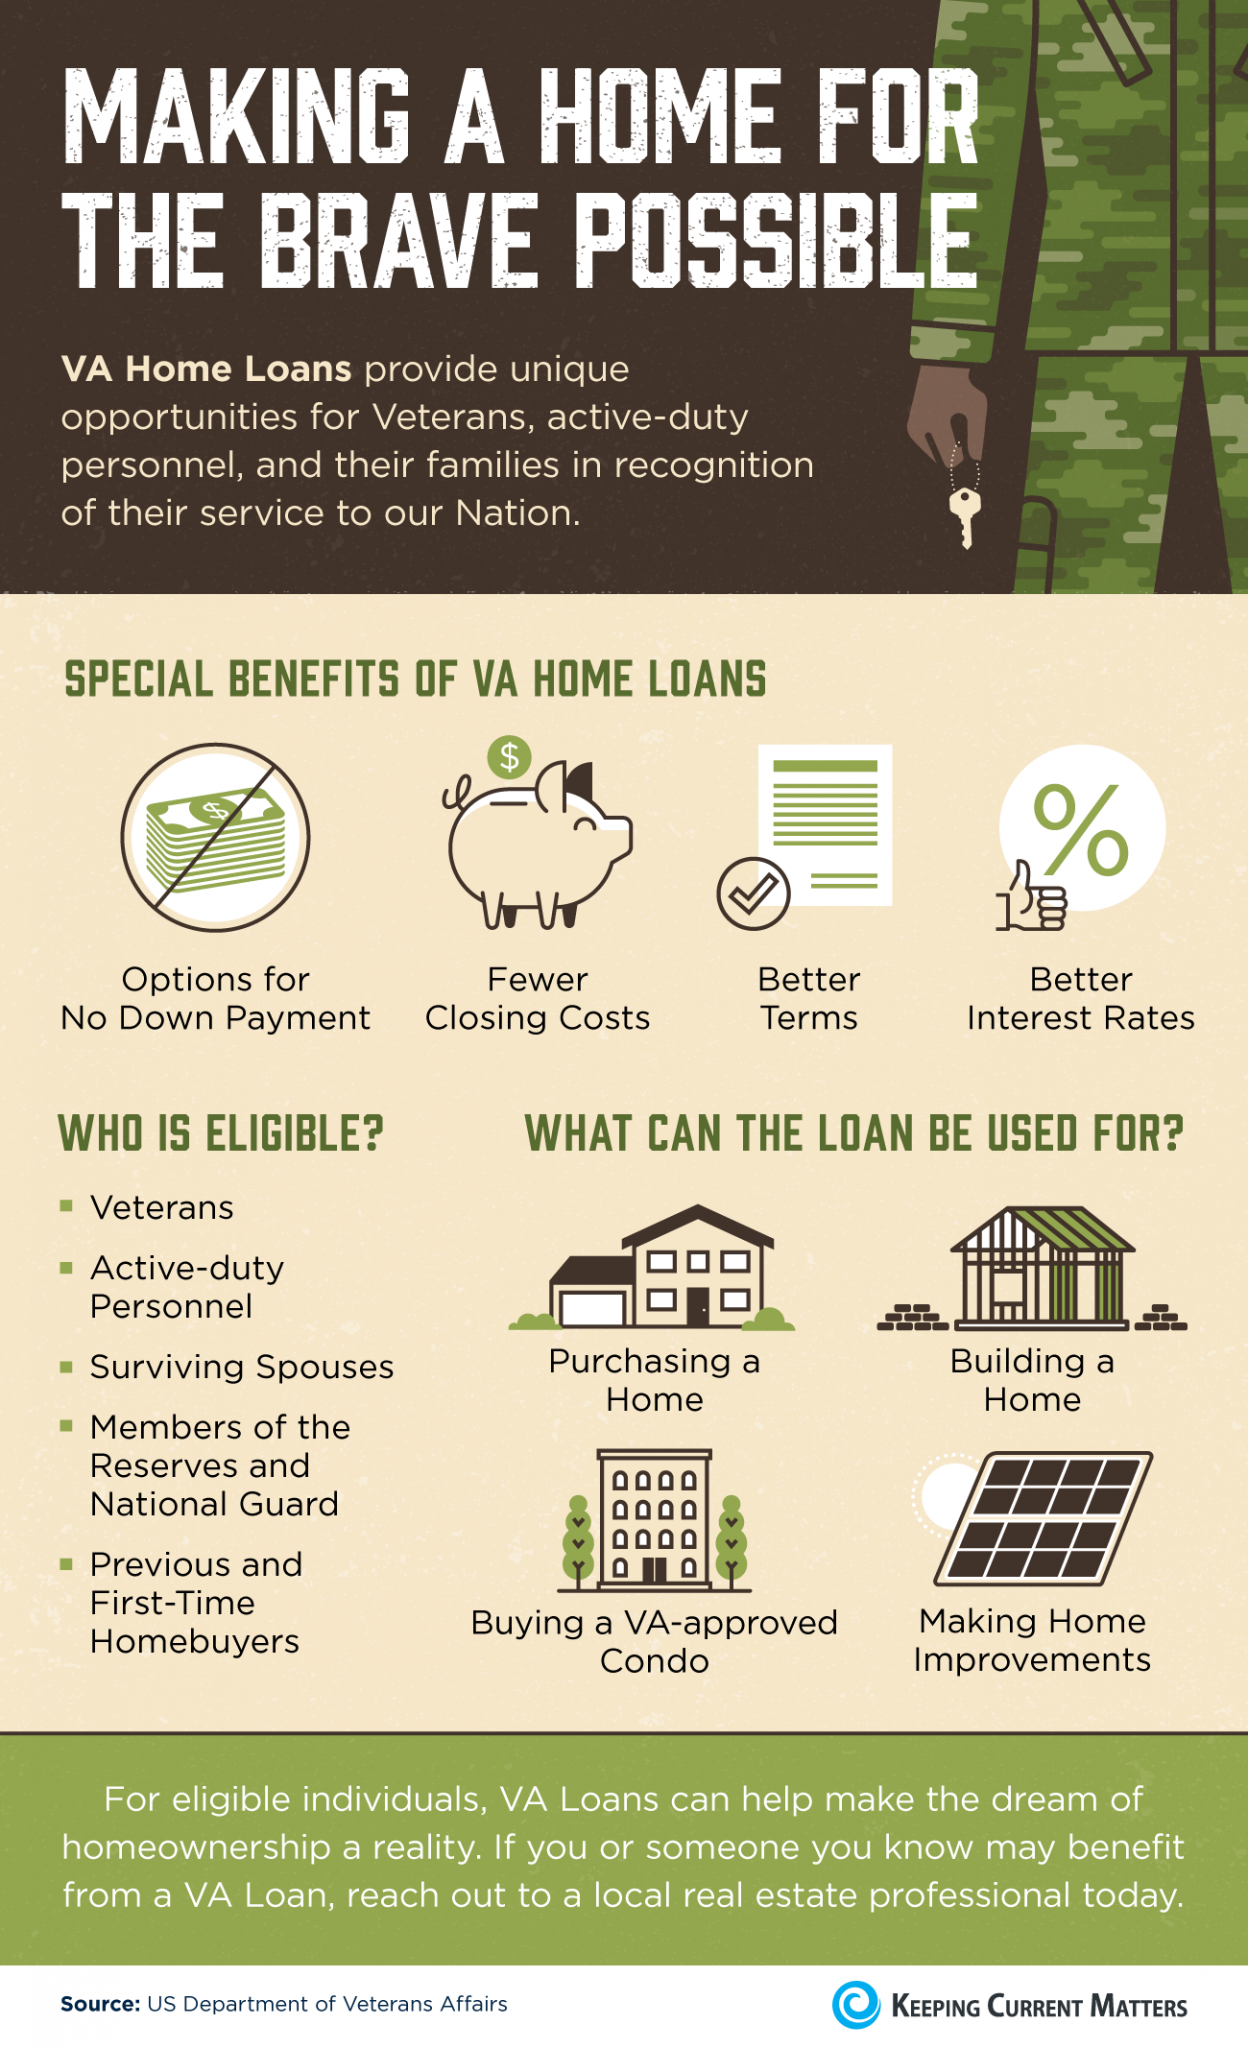 Making A Home For The Brave Possible Infographic Keeping Current Matters Home Loans Va Loan Real Estate Information